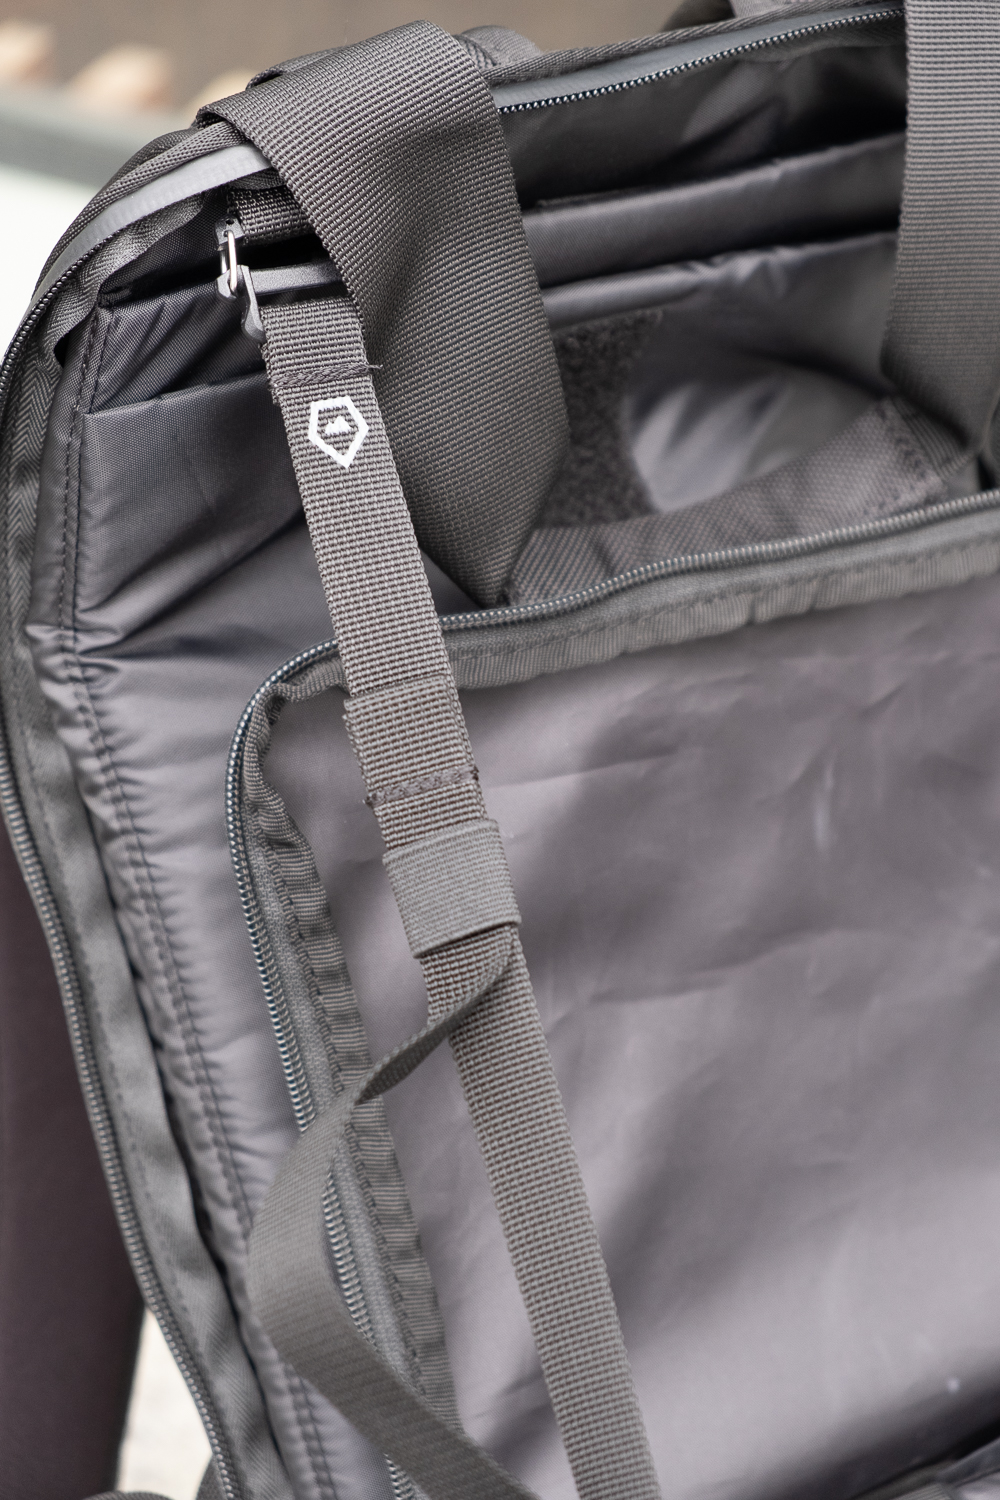 These detachable straps can be fixed into one of the many points around interior and the exterior of the bag. Perfect to strap on that extra stuff that you need to carry